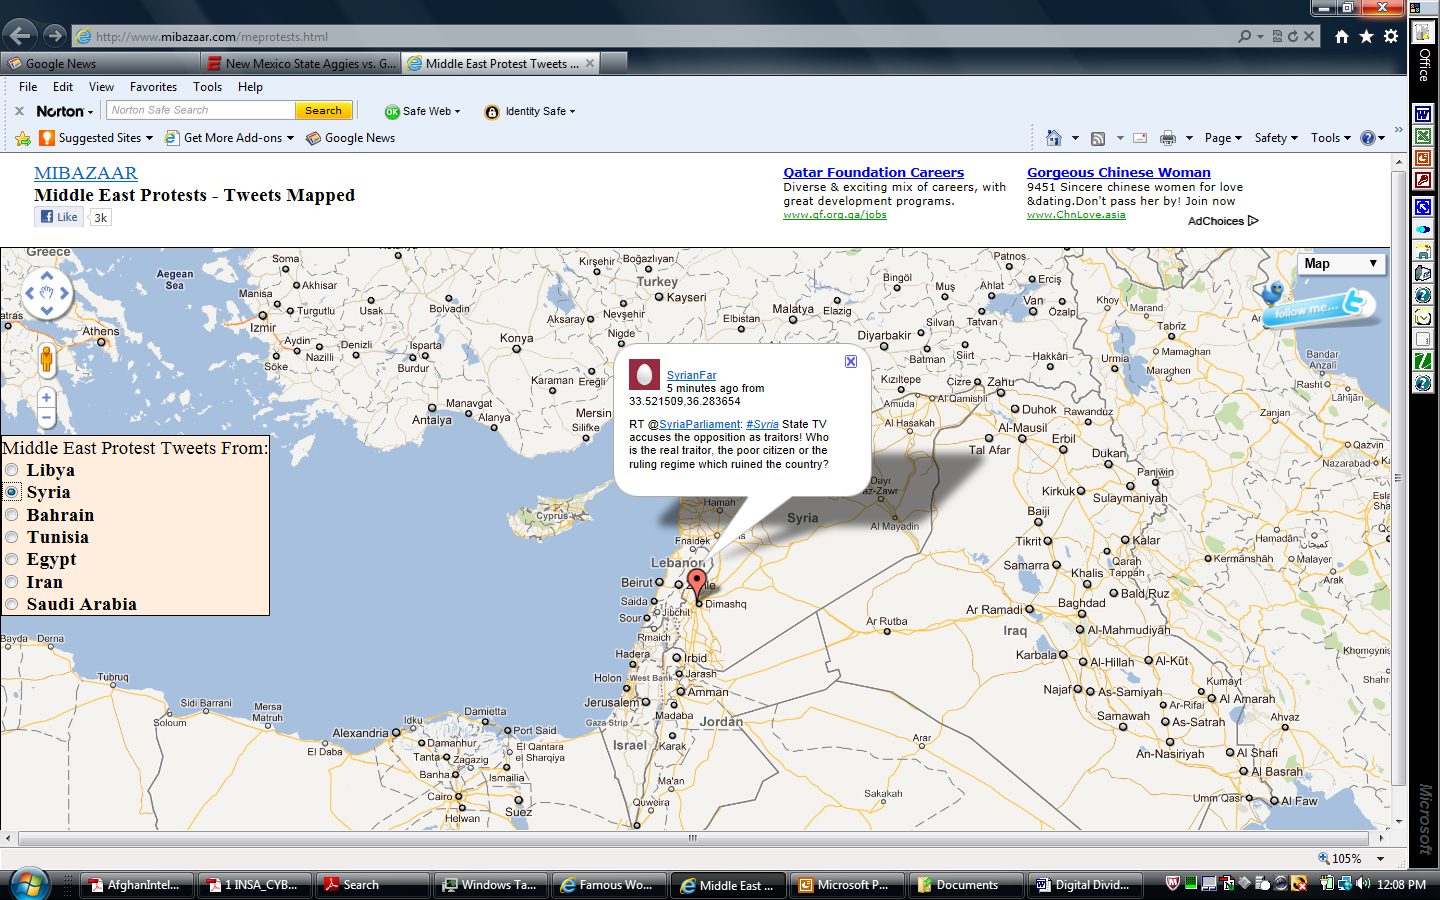 screen shot of MIBAZAAR Middle East Protest Tweets mapped, see image caption